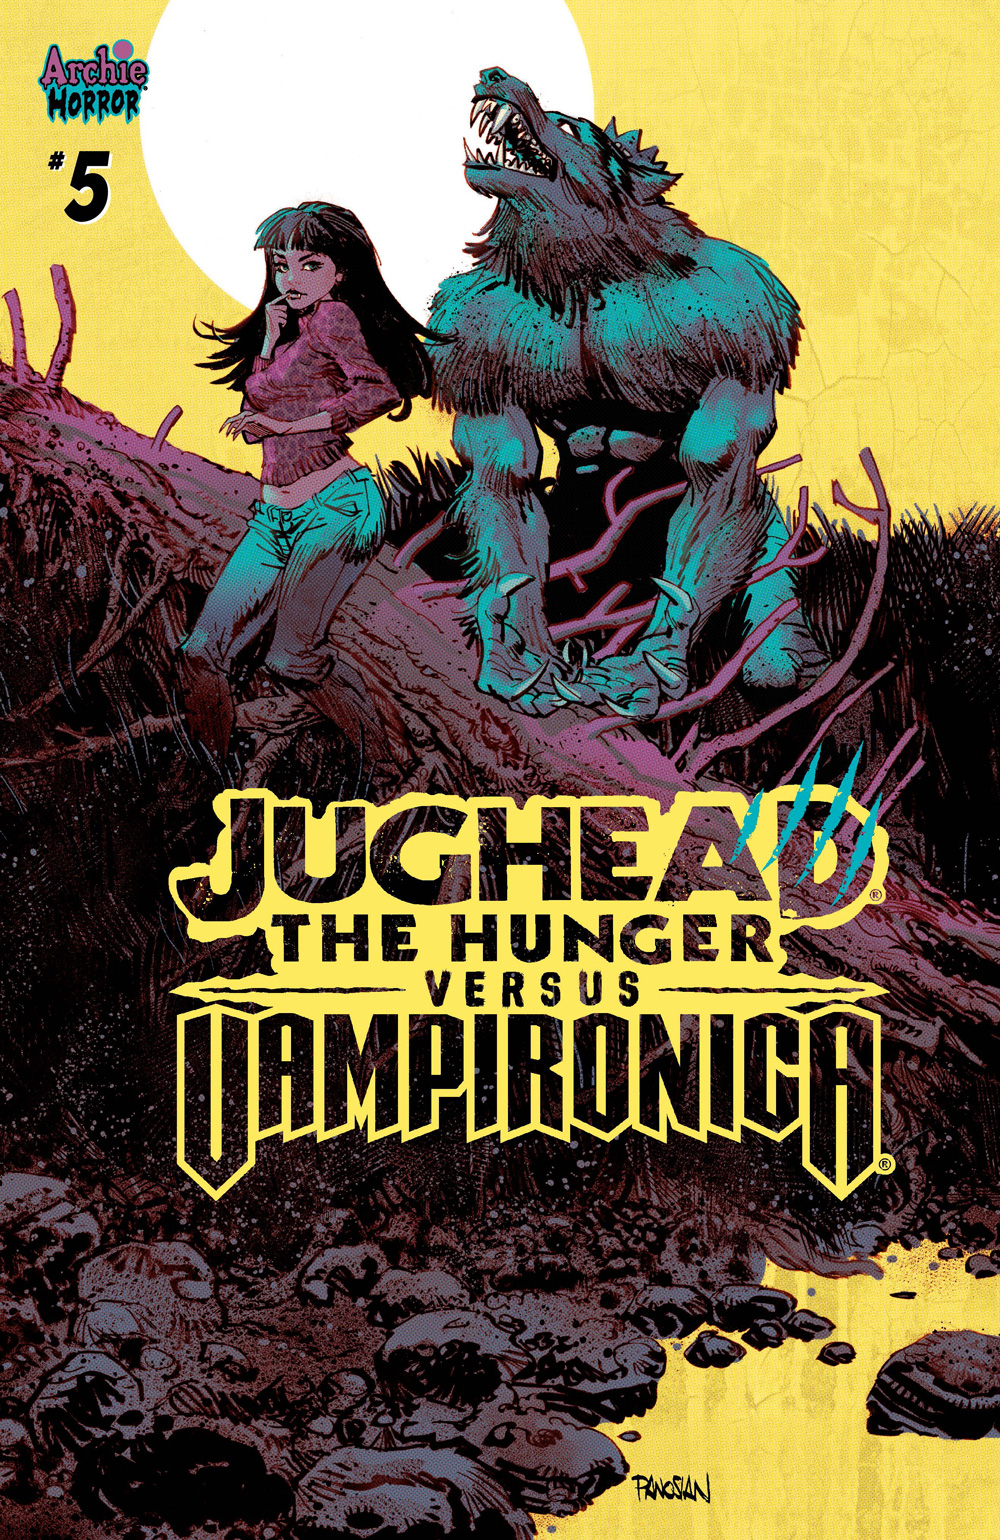 A variant cover for Jughead the Hunger Vs Vampironica #5.